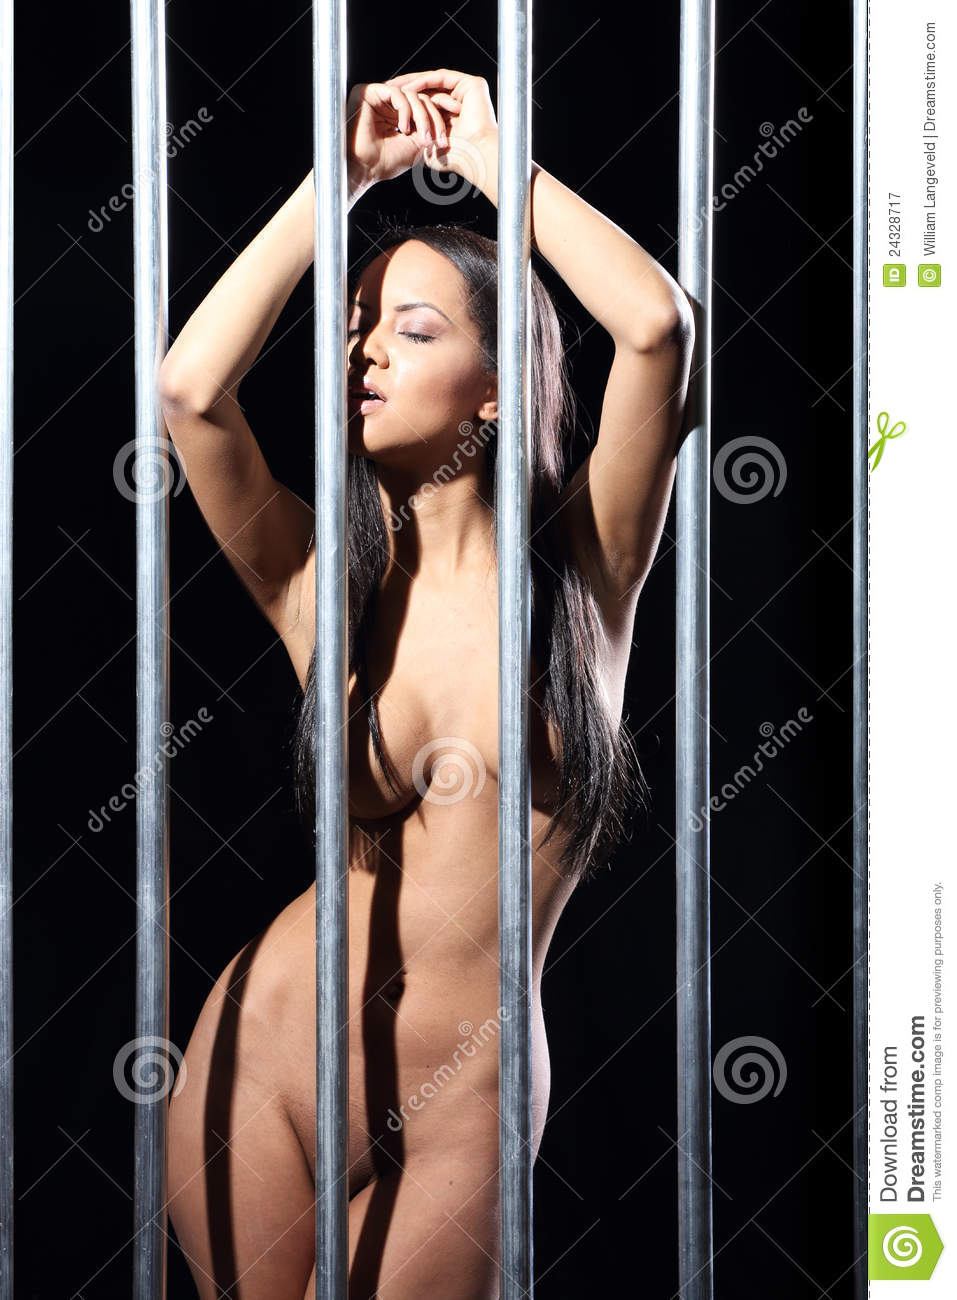 Dirty pic for sex in prison sexy scenes